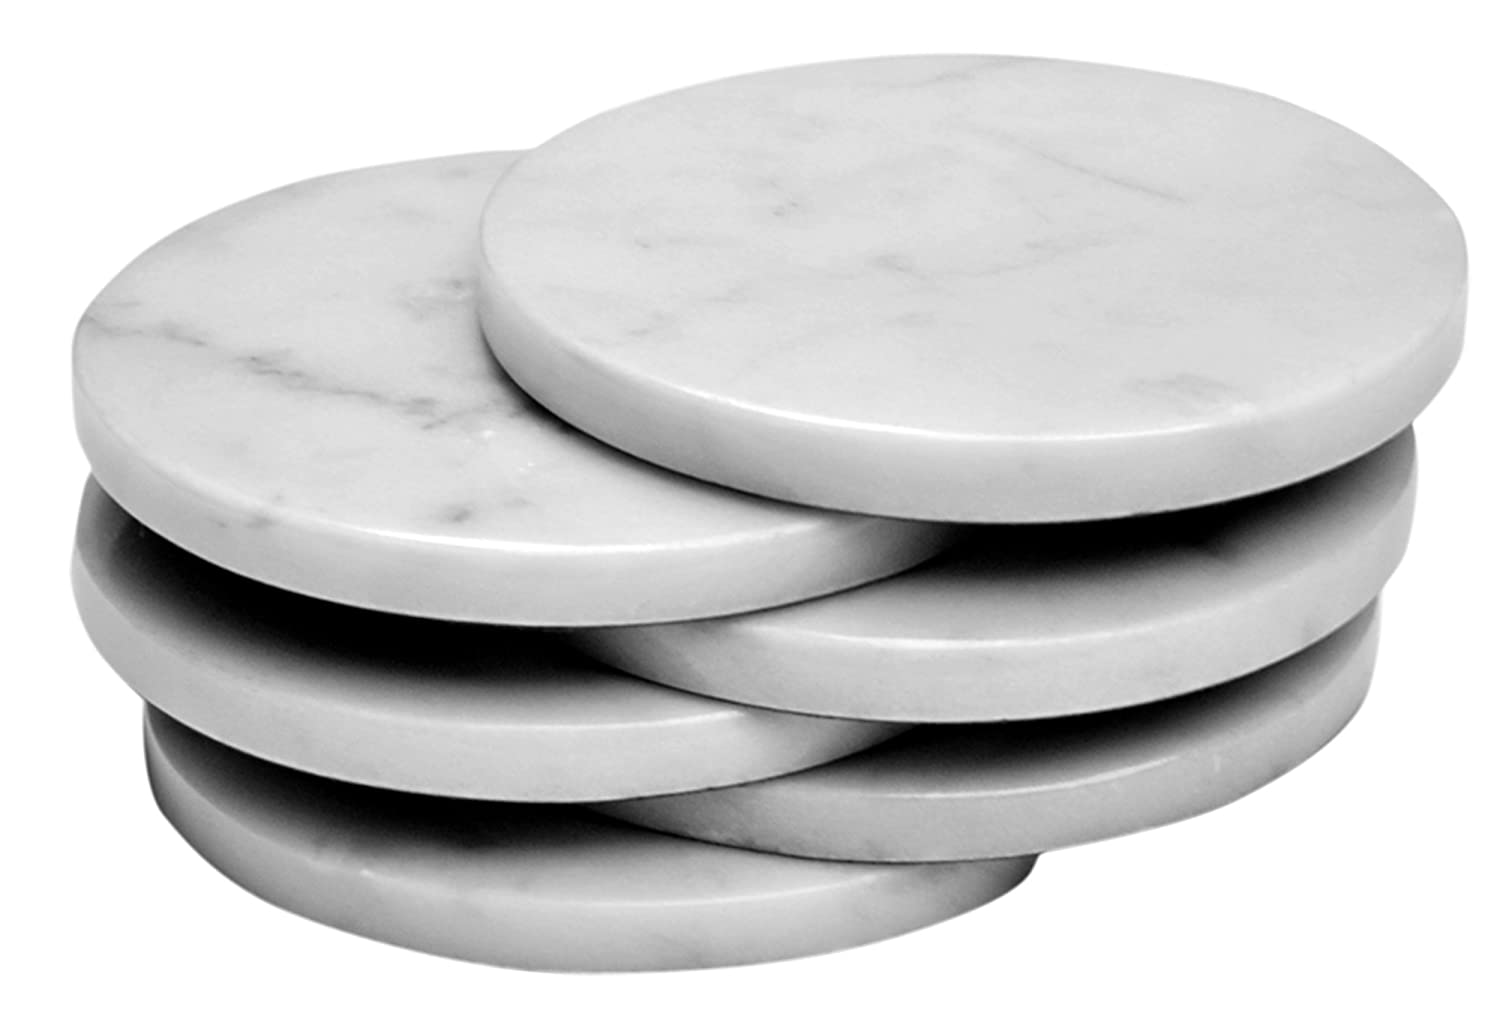 Understand Why Buying A Stone Coaster Is Better